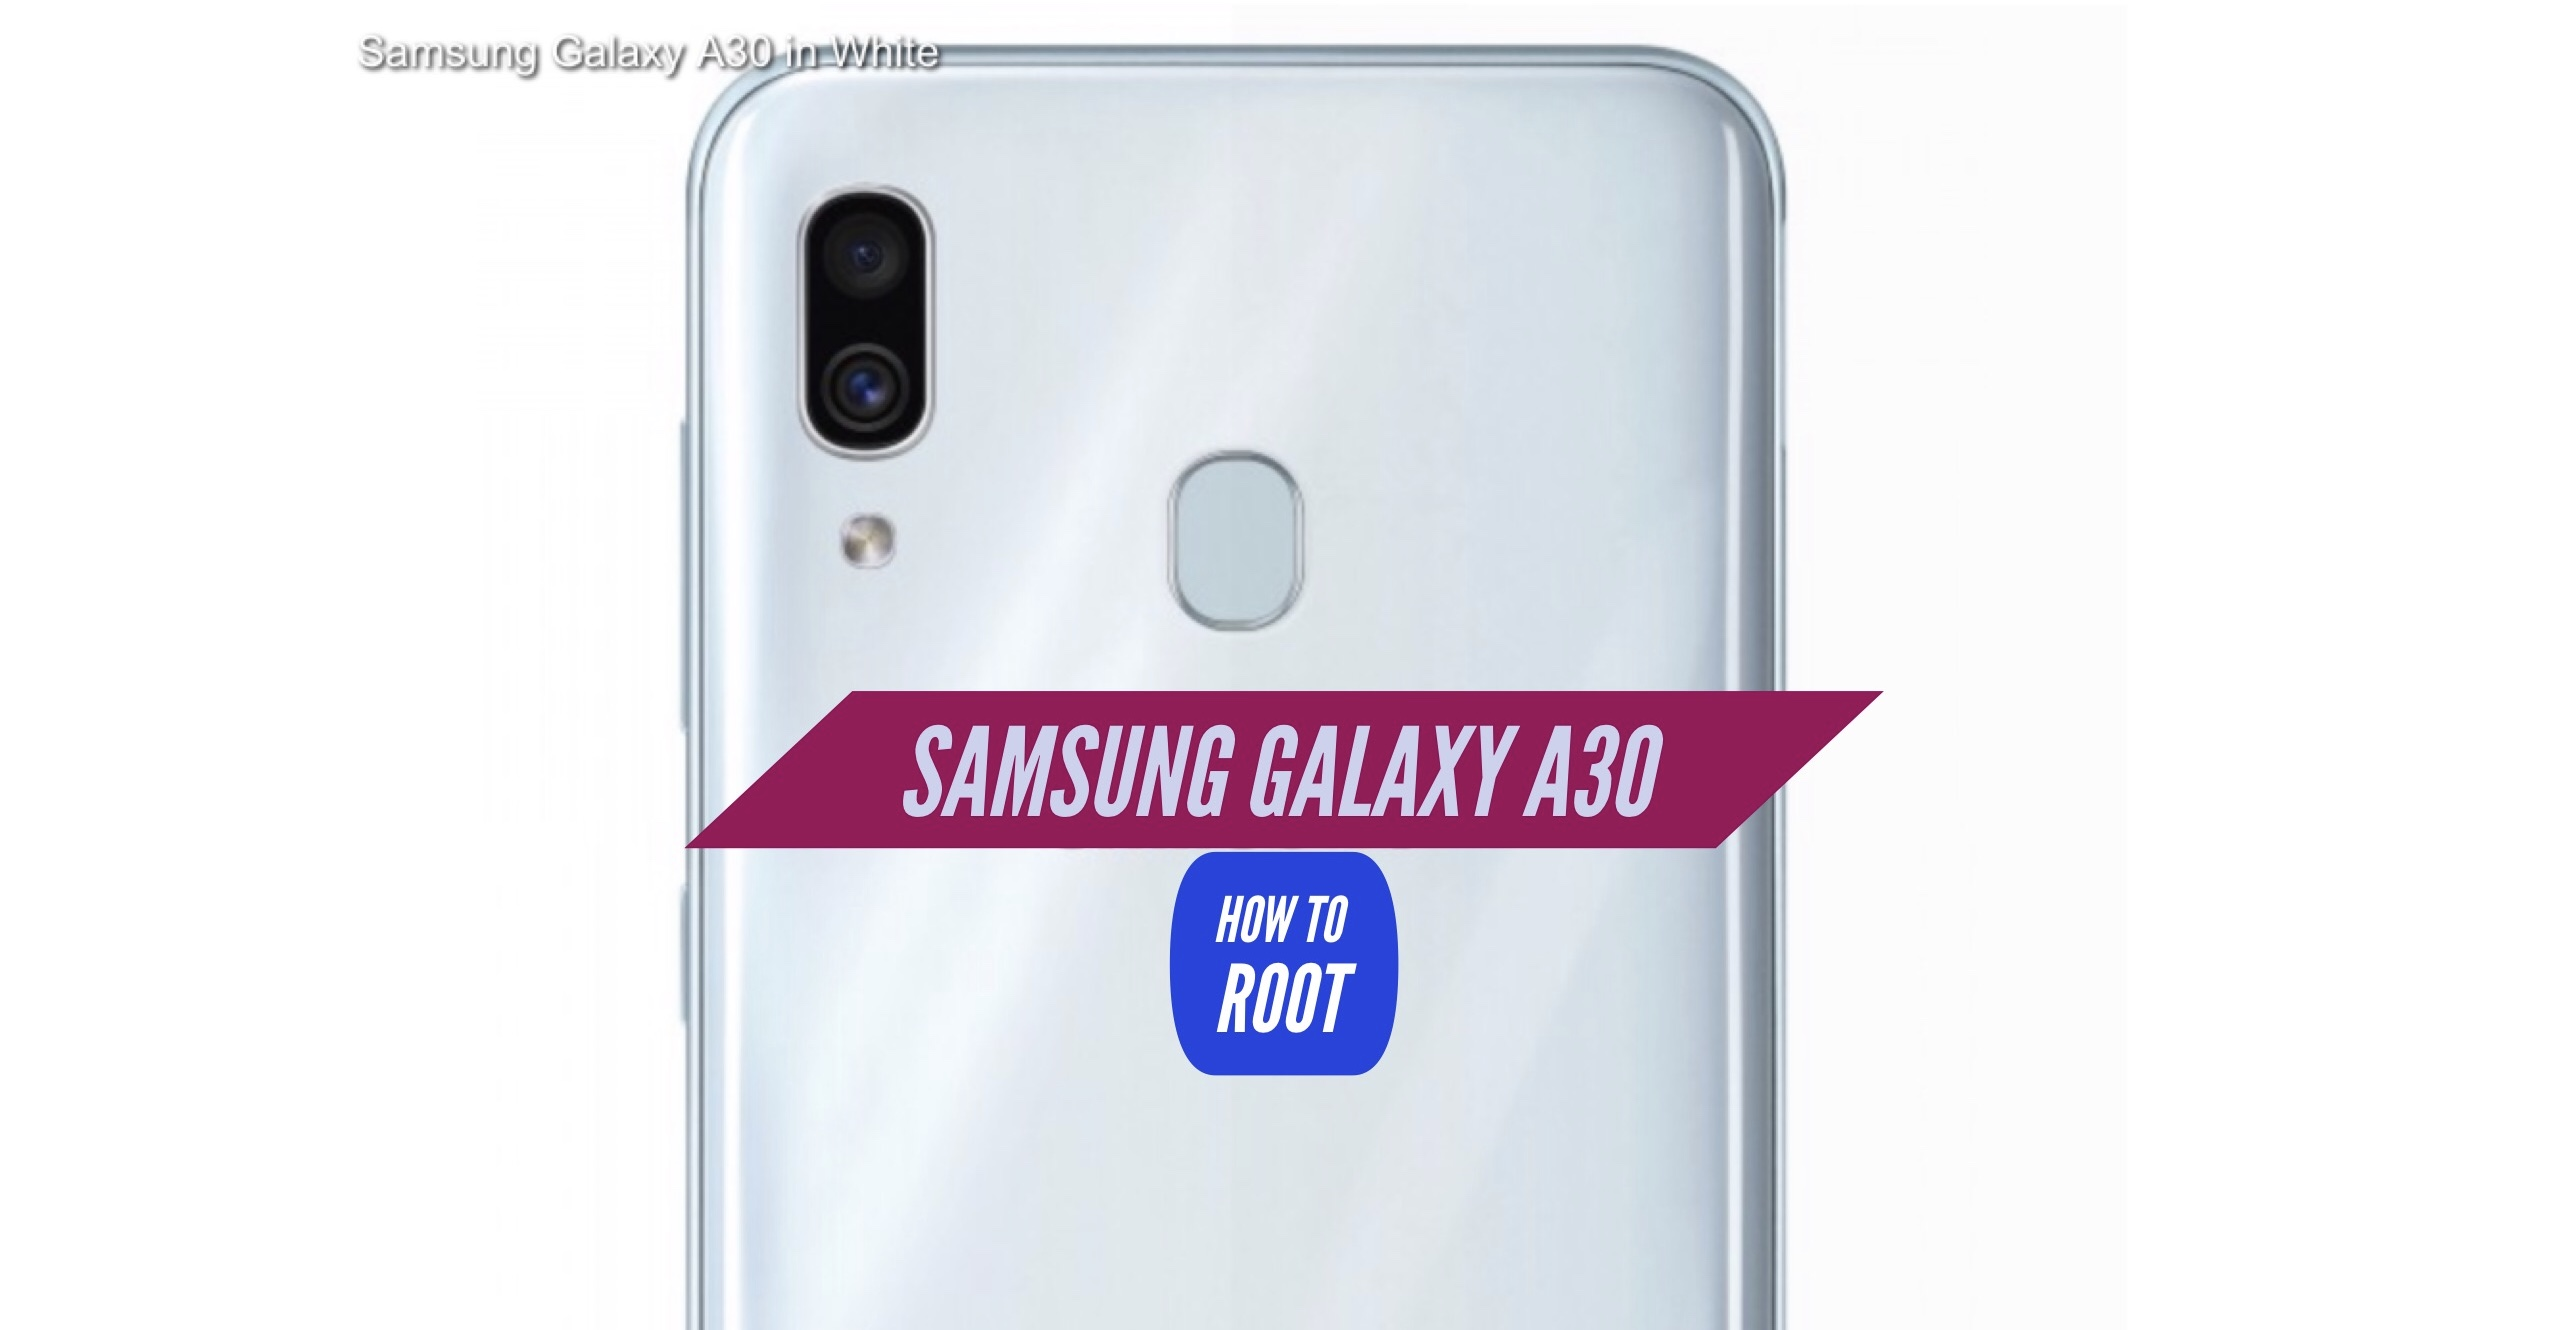 How to Root Samsung Galaxy A30 - Four Easy METHODS!